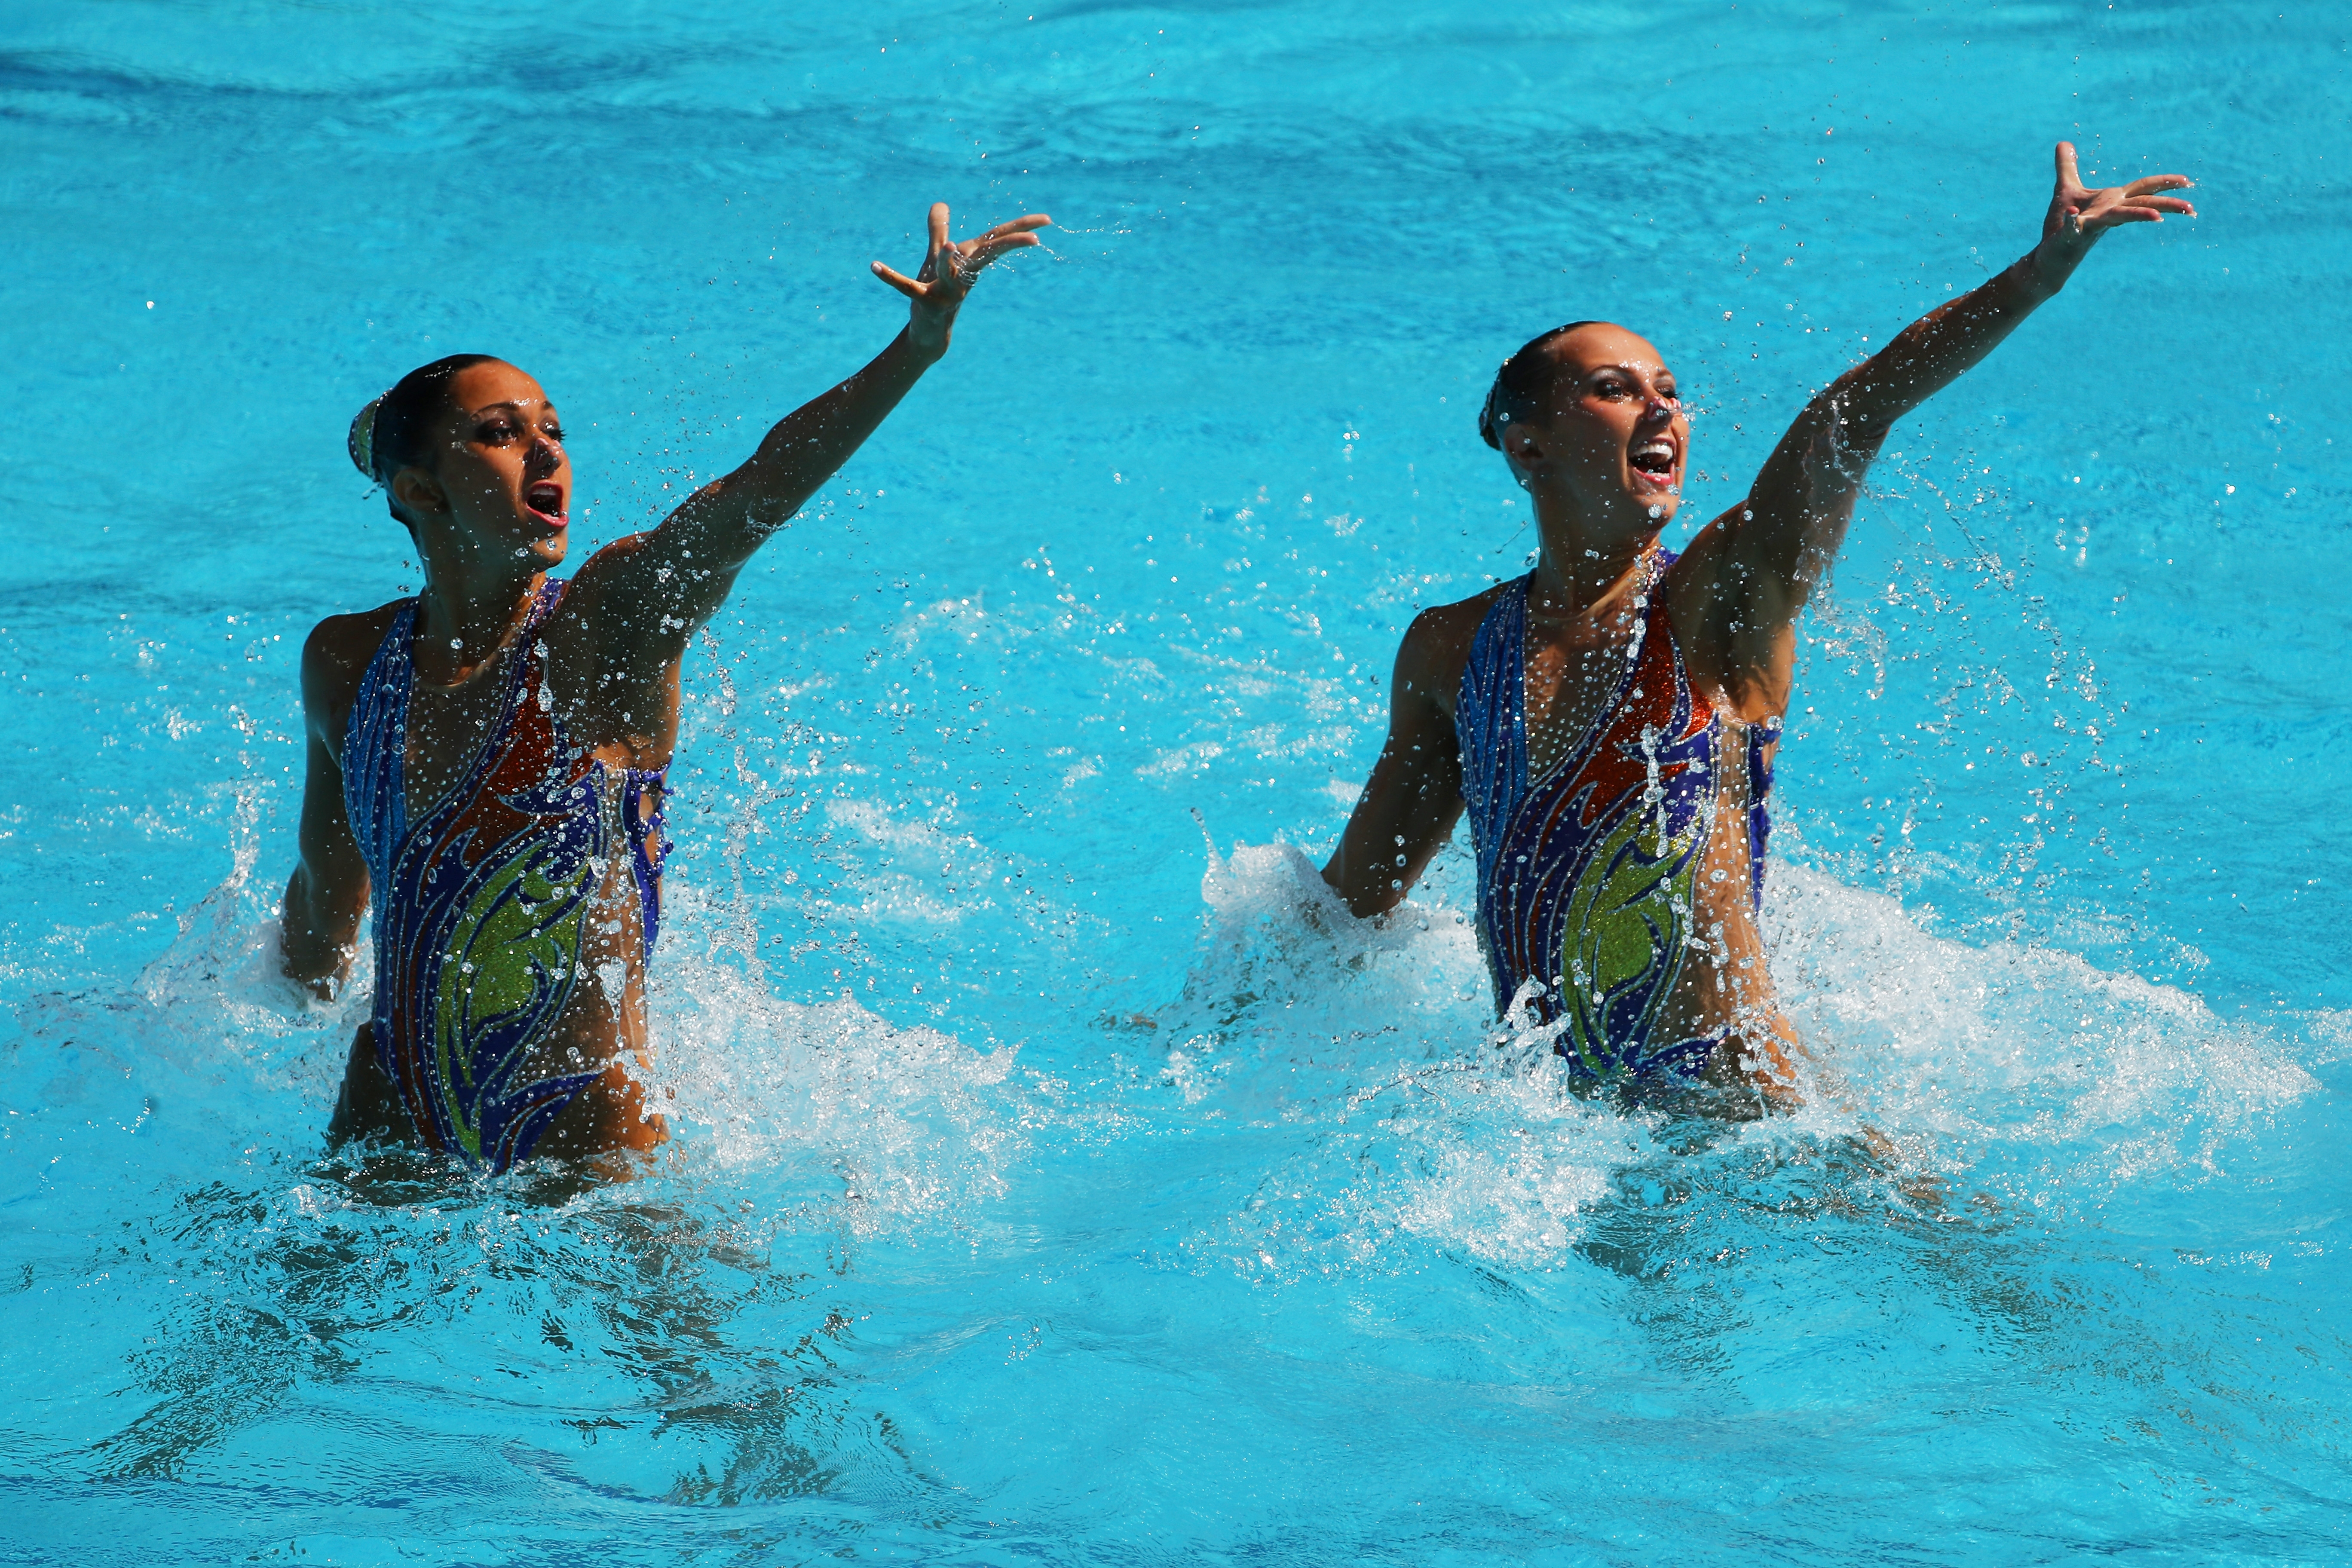 Anita Alvarez and Mariya Koroleva compete Sunday in the 2016 Olympic Games in Rio de Janeiro.  Synchronised  Swimming Free Routine Preliminary Round on Day 9 of the Rio 2016 Olympic Games at Maria Lenk Aquatics Centre on August 14, 2016 in Rio de Janeiro, Brazil.  (Photo by Al Bello/Getty Images)